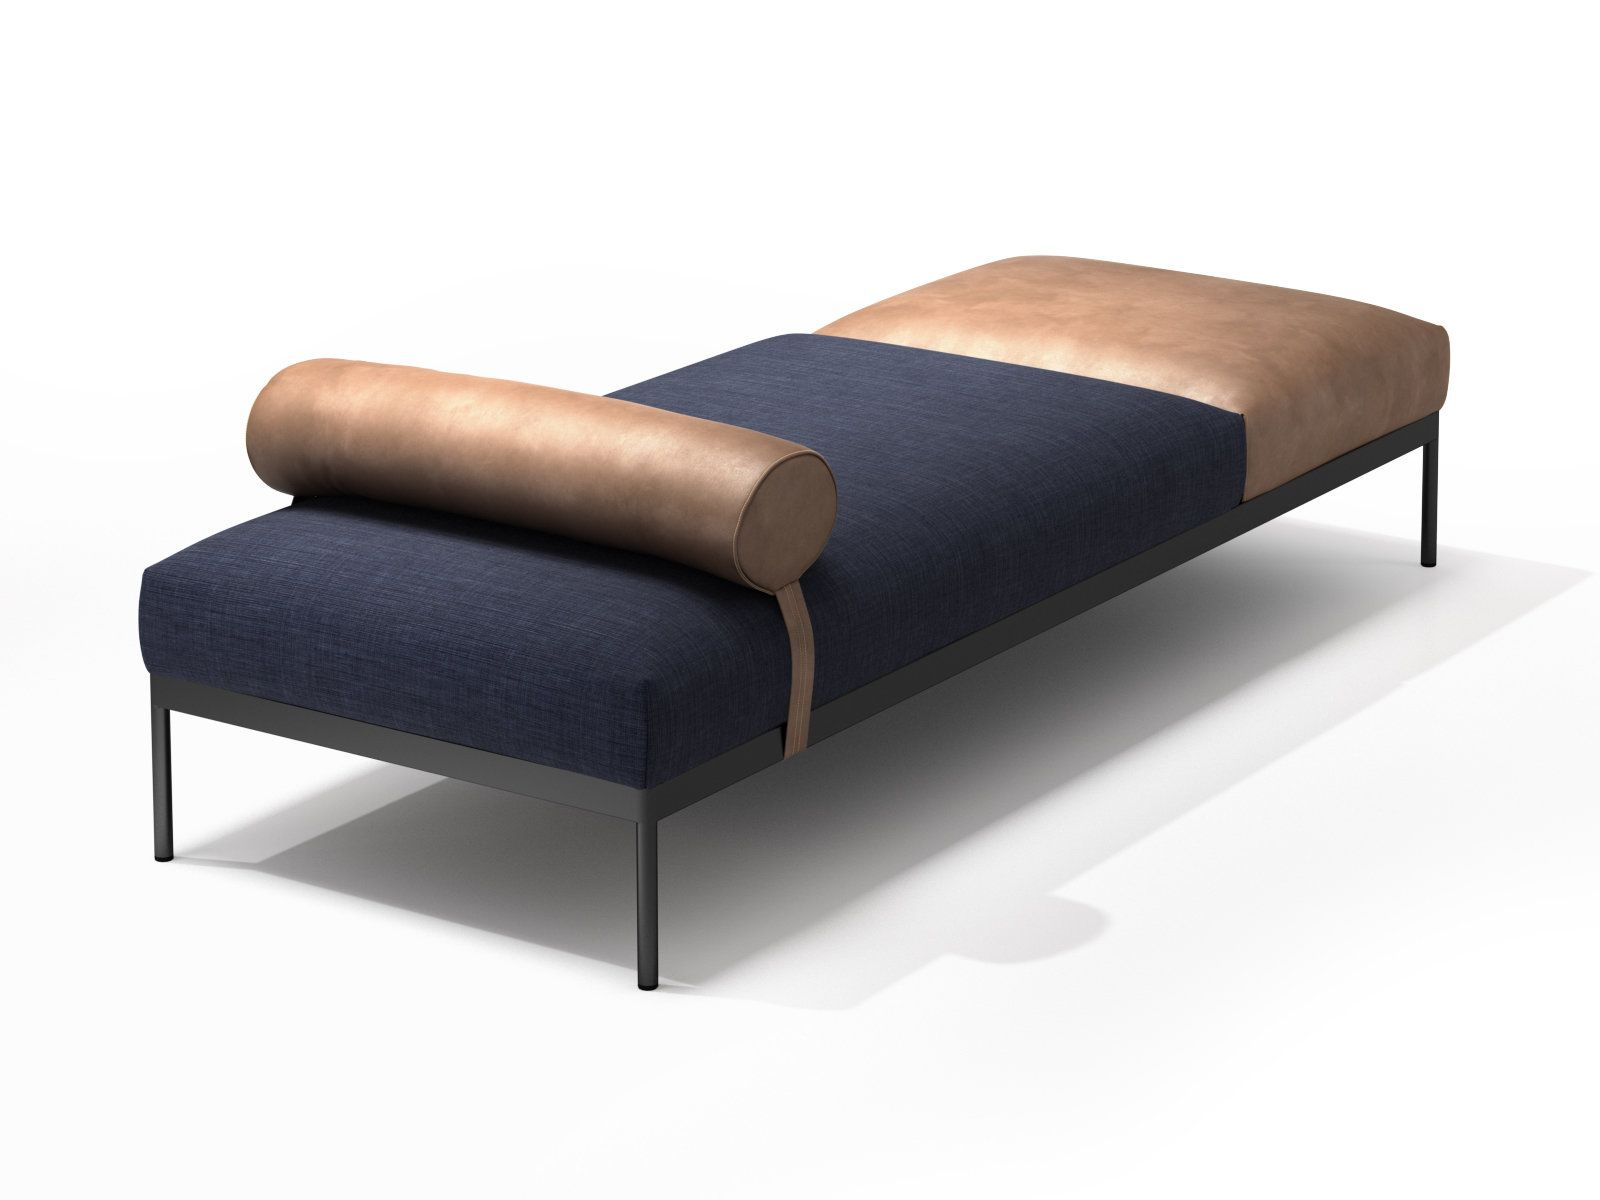 Ecksofa 3d Bon Daybed 3d Model By Design Connected In 2018 Furniture